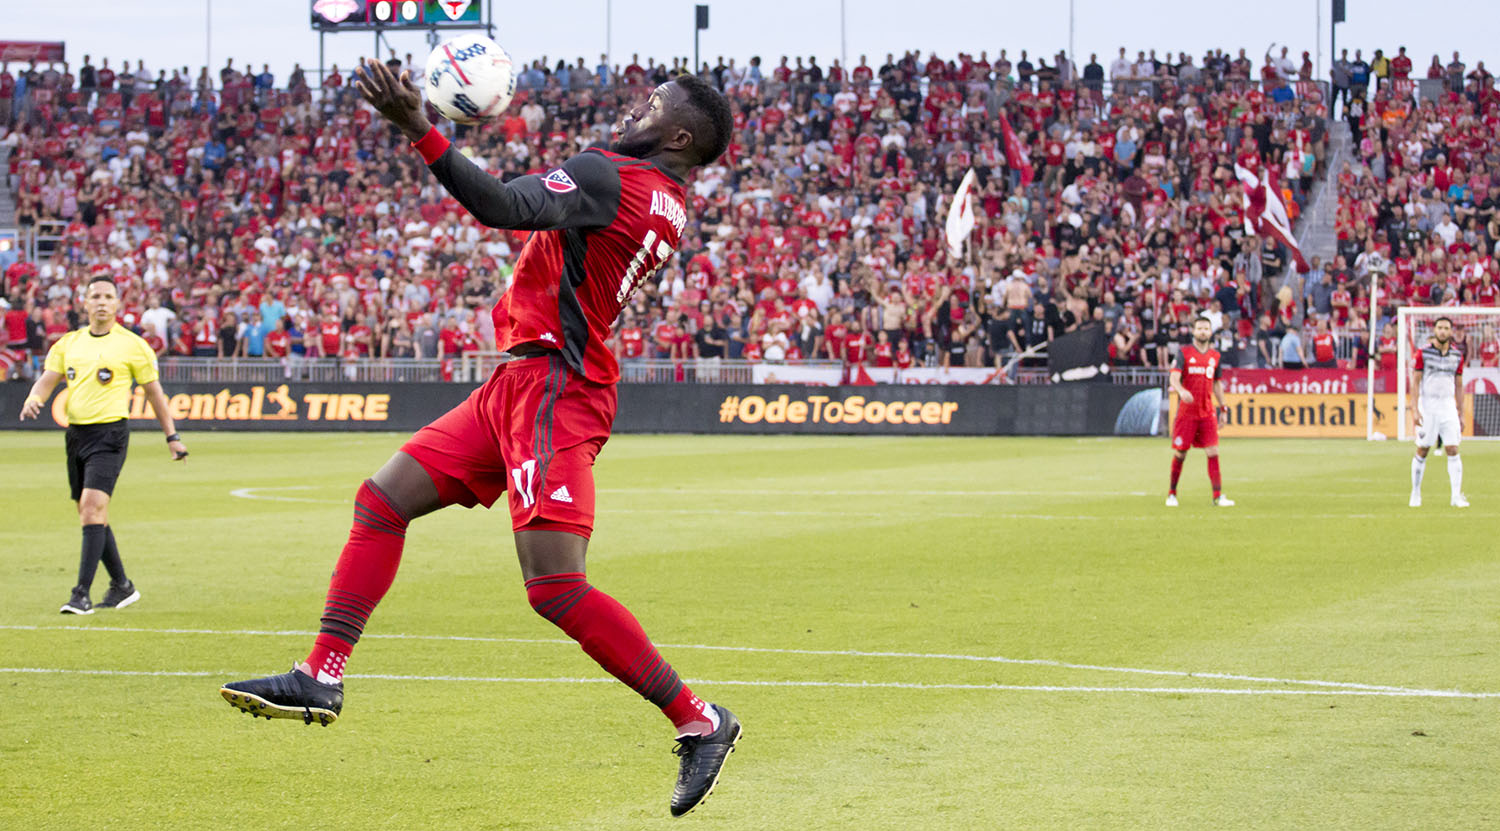 Jozy Altidore tries to trap the ball with his chest and bring it to ground at BMO Field in 2017. Image by Dennis Marciniak of denMAR Media.